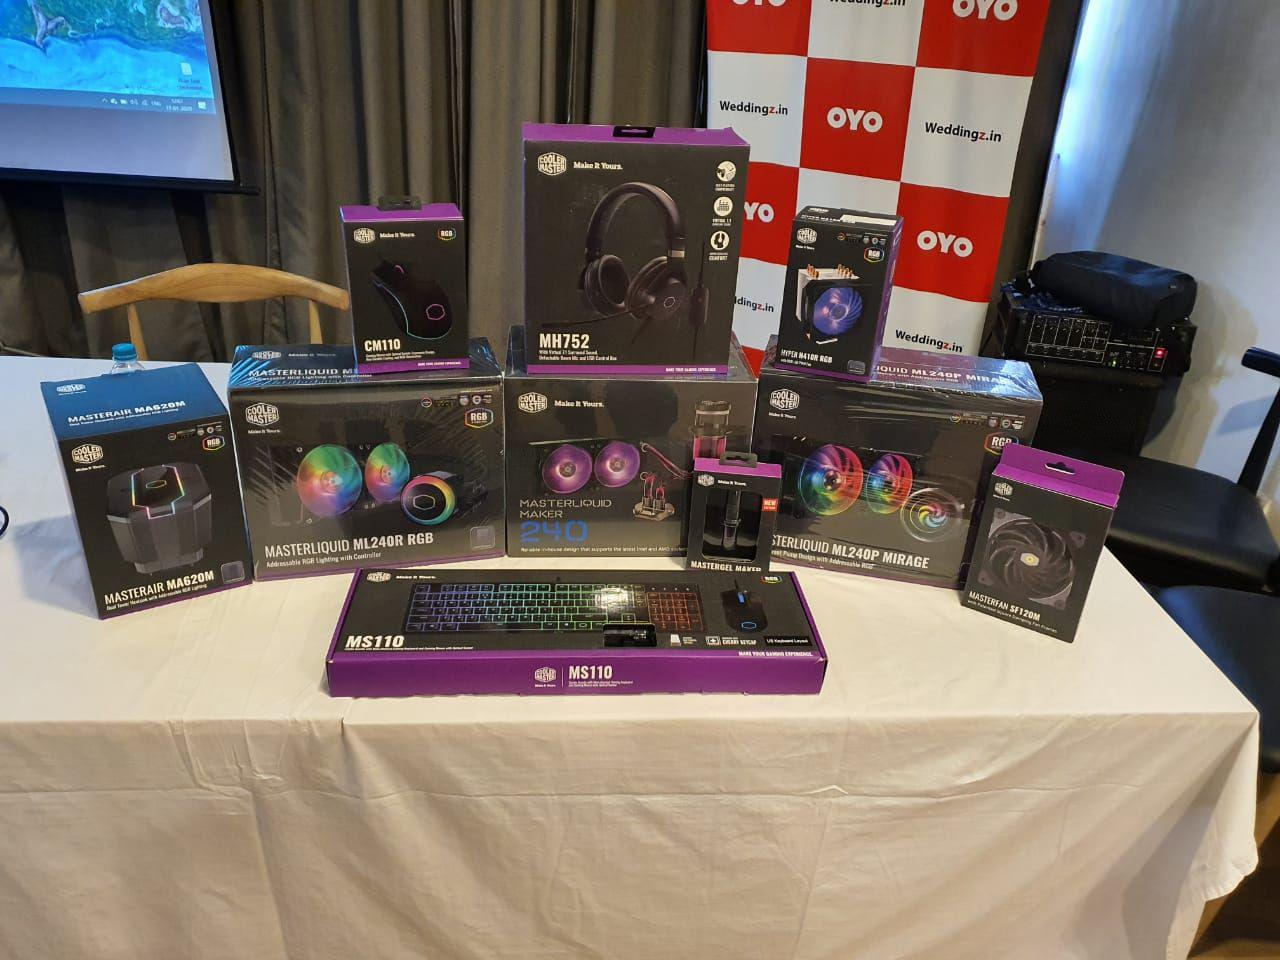 Cooler Master Launch event